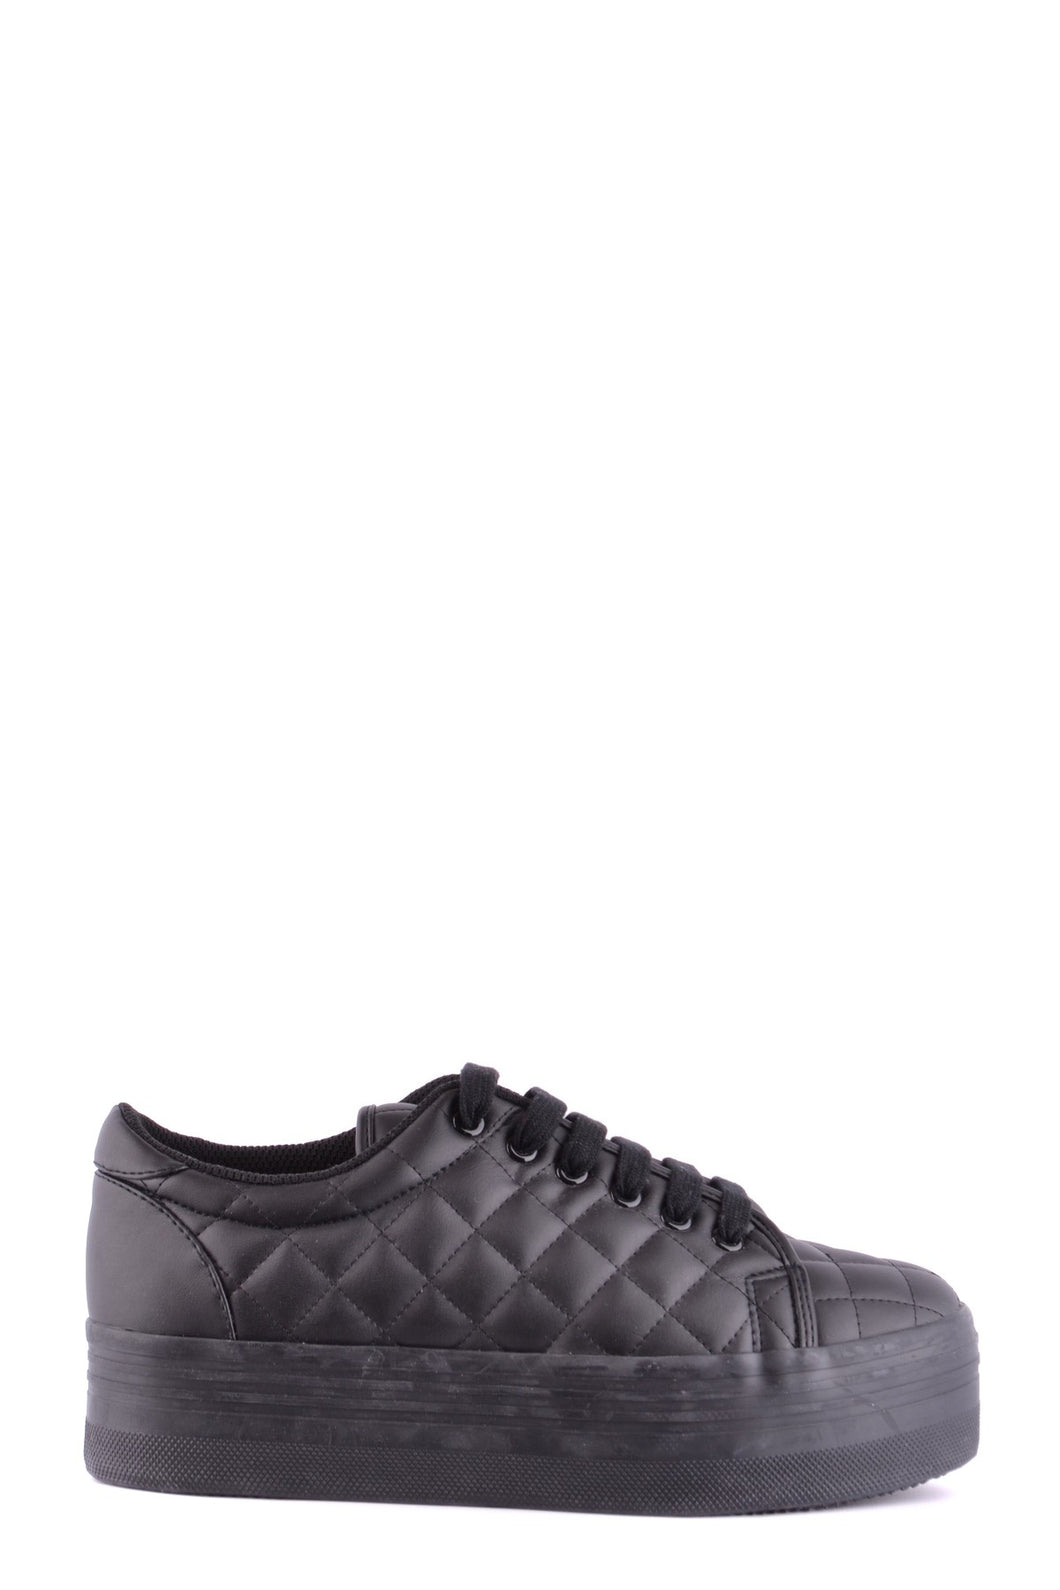 Jc Play By Jeffrey Campbell Sneakers Donna - Universalbrand